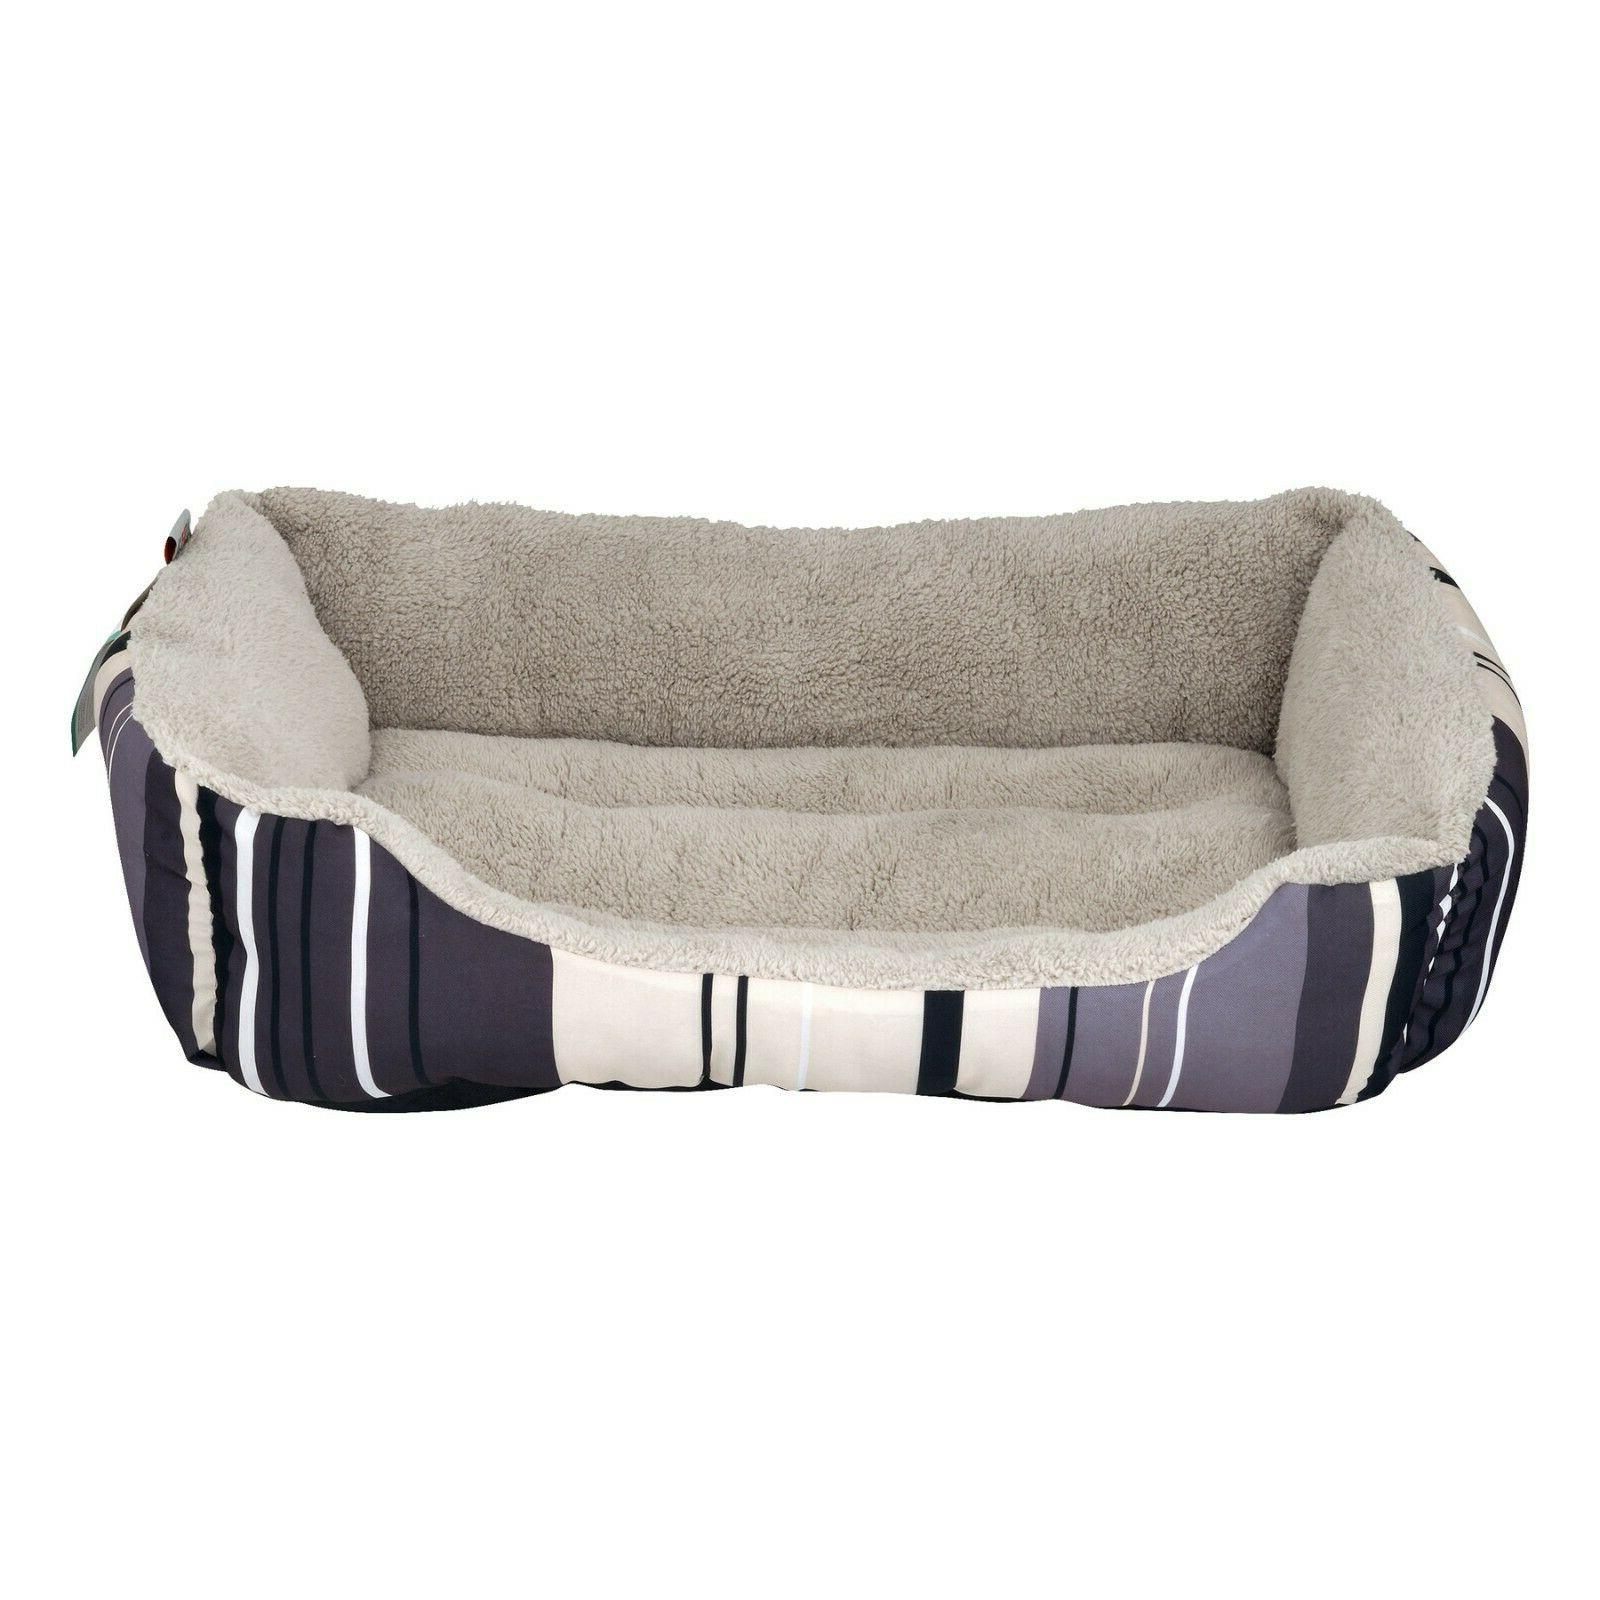 striped cuddler dog and cat pet bed